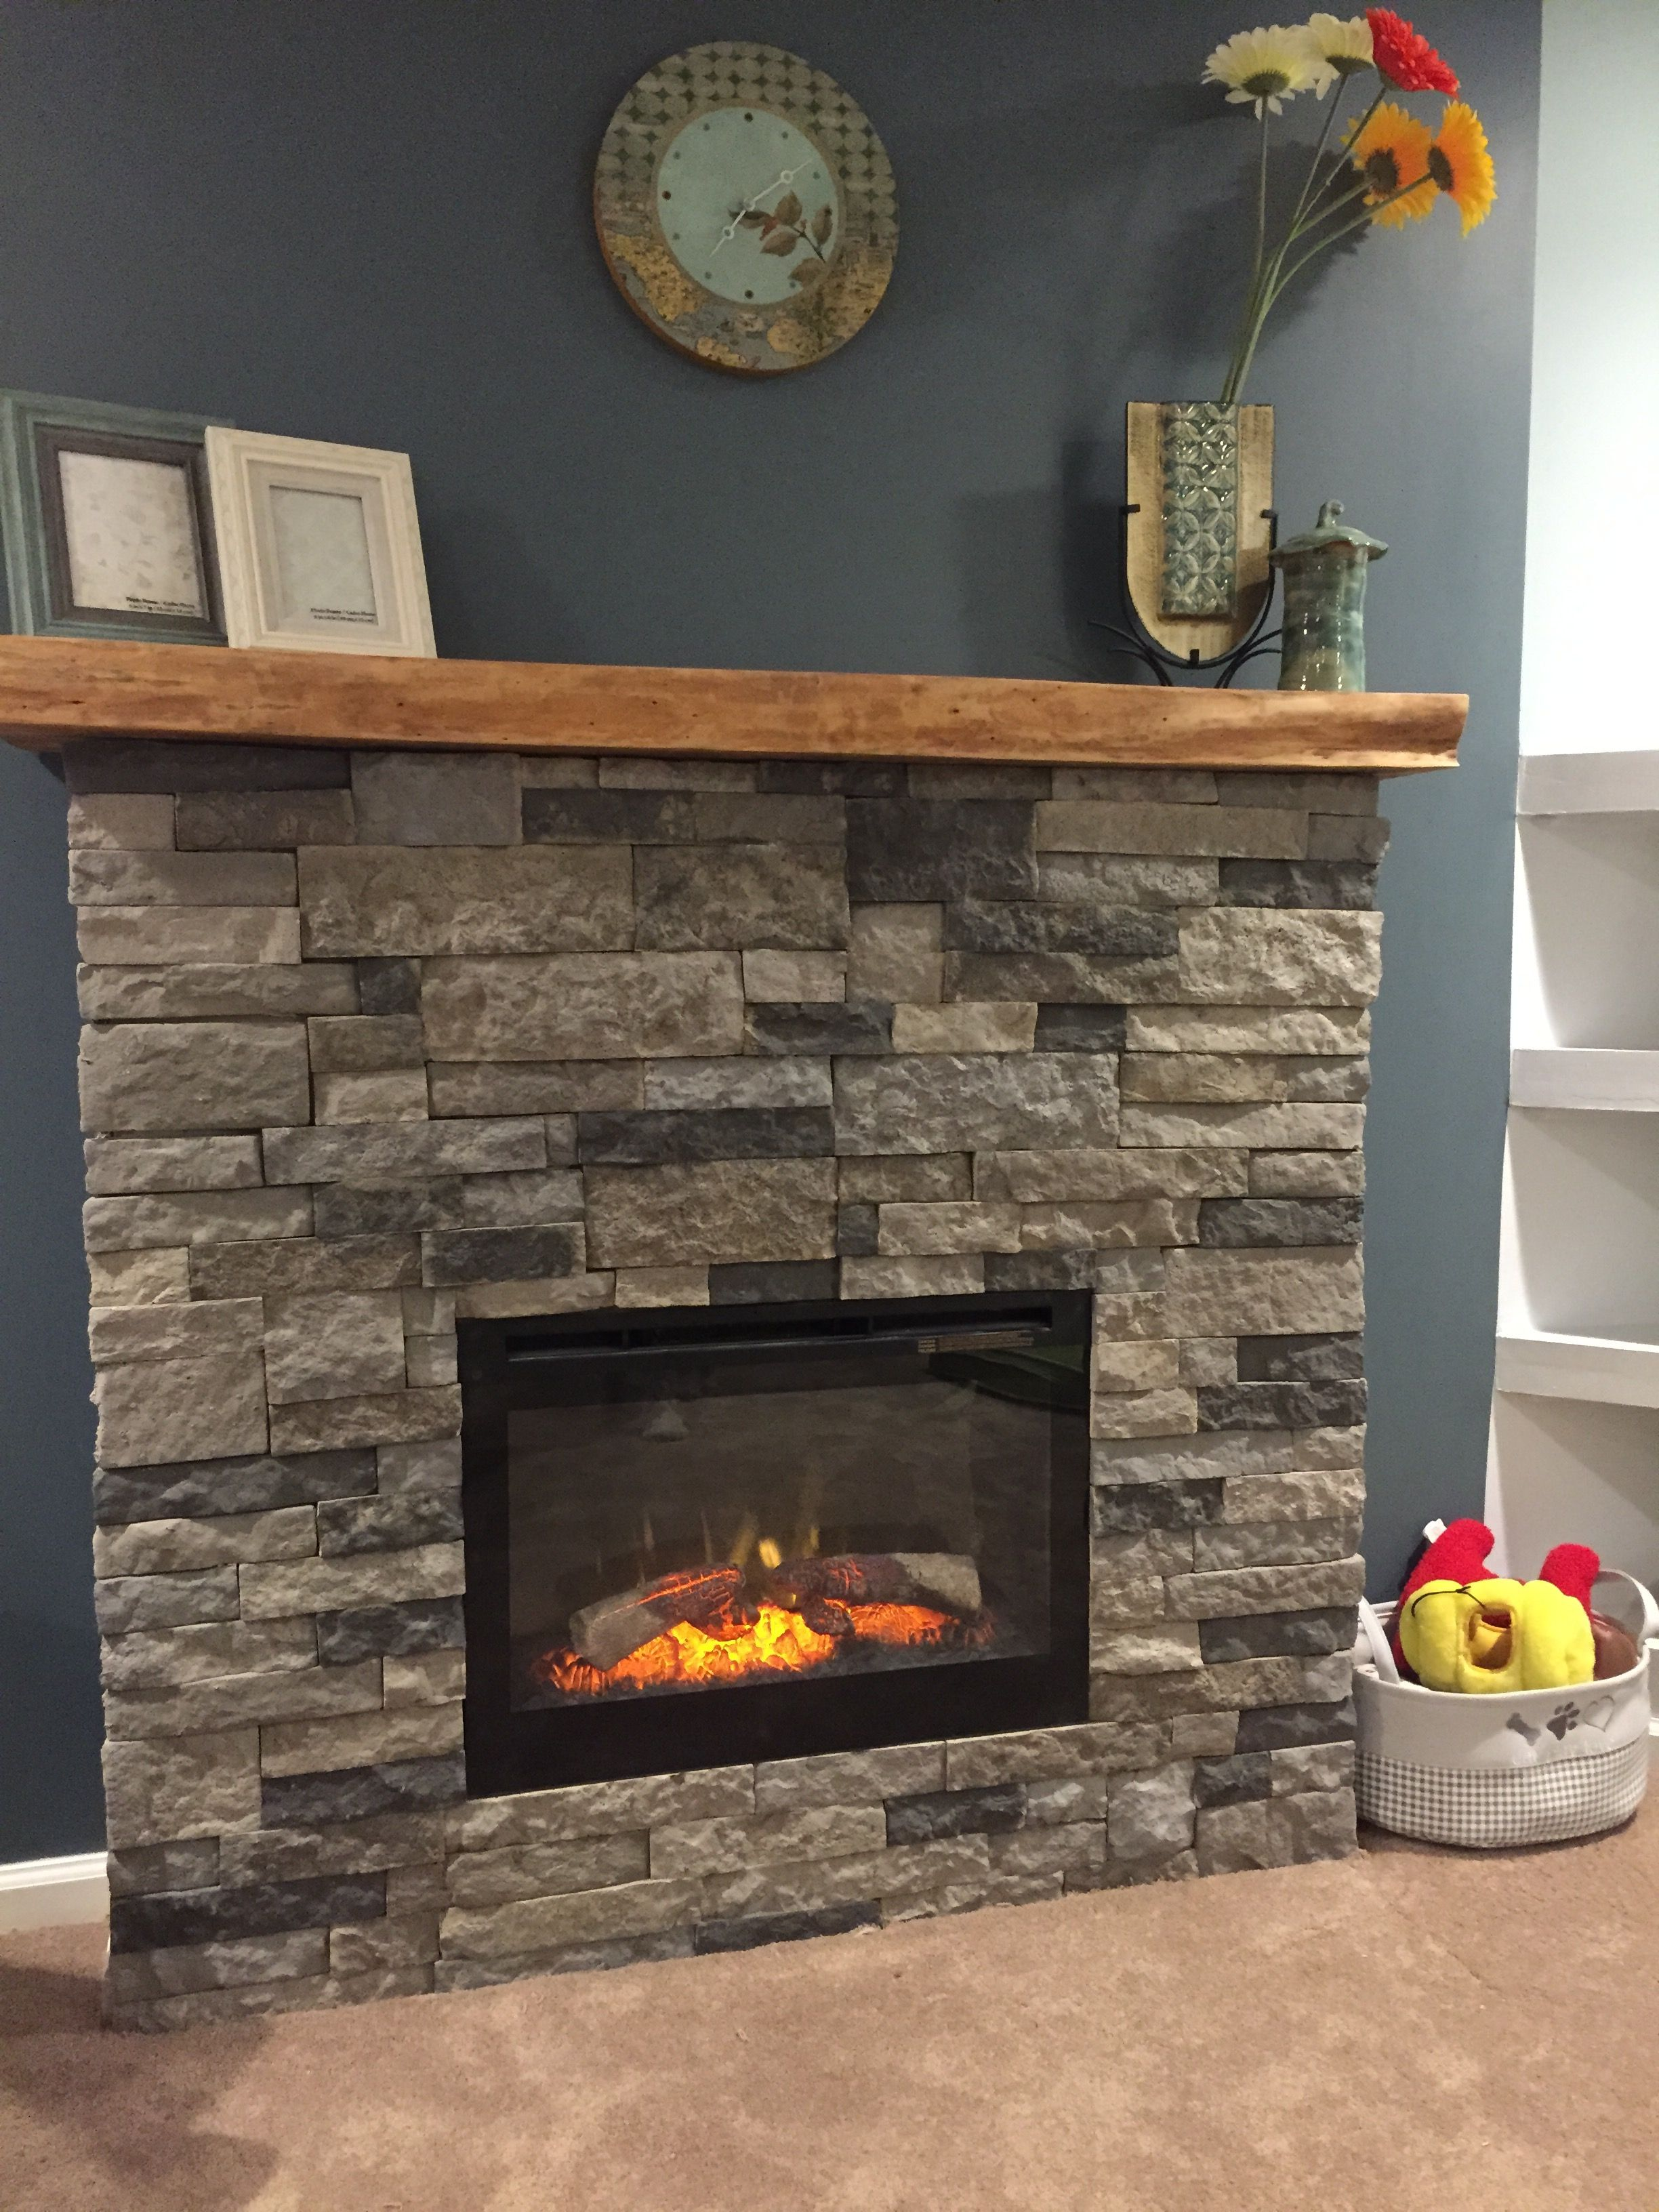 corner tv stand ideas for living room best window treatments so much fun!! diy airstone electric fireplace, ambroise ...